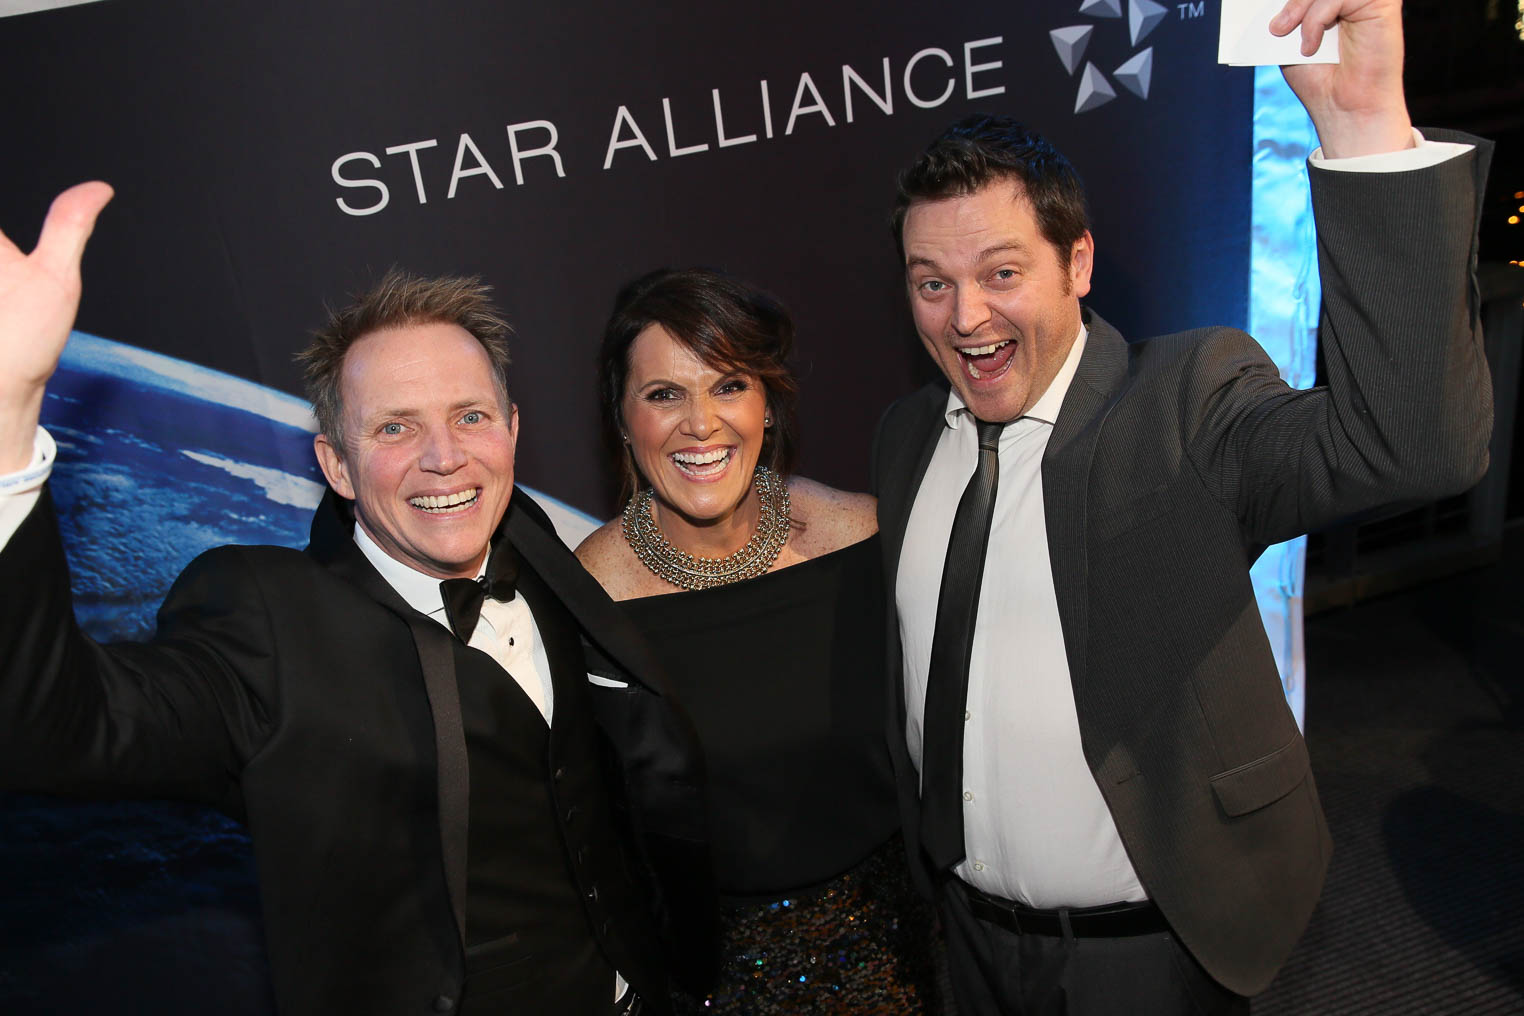 Star Alliance Scratch and Win_2_(L-R) Tim Clyde-Smith (SAA)_Vanessa Whitaker (Tripadeal)_David Cox (Intrepid Travel)